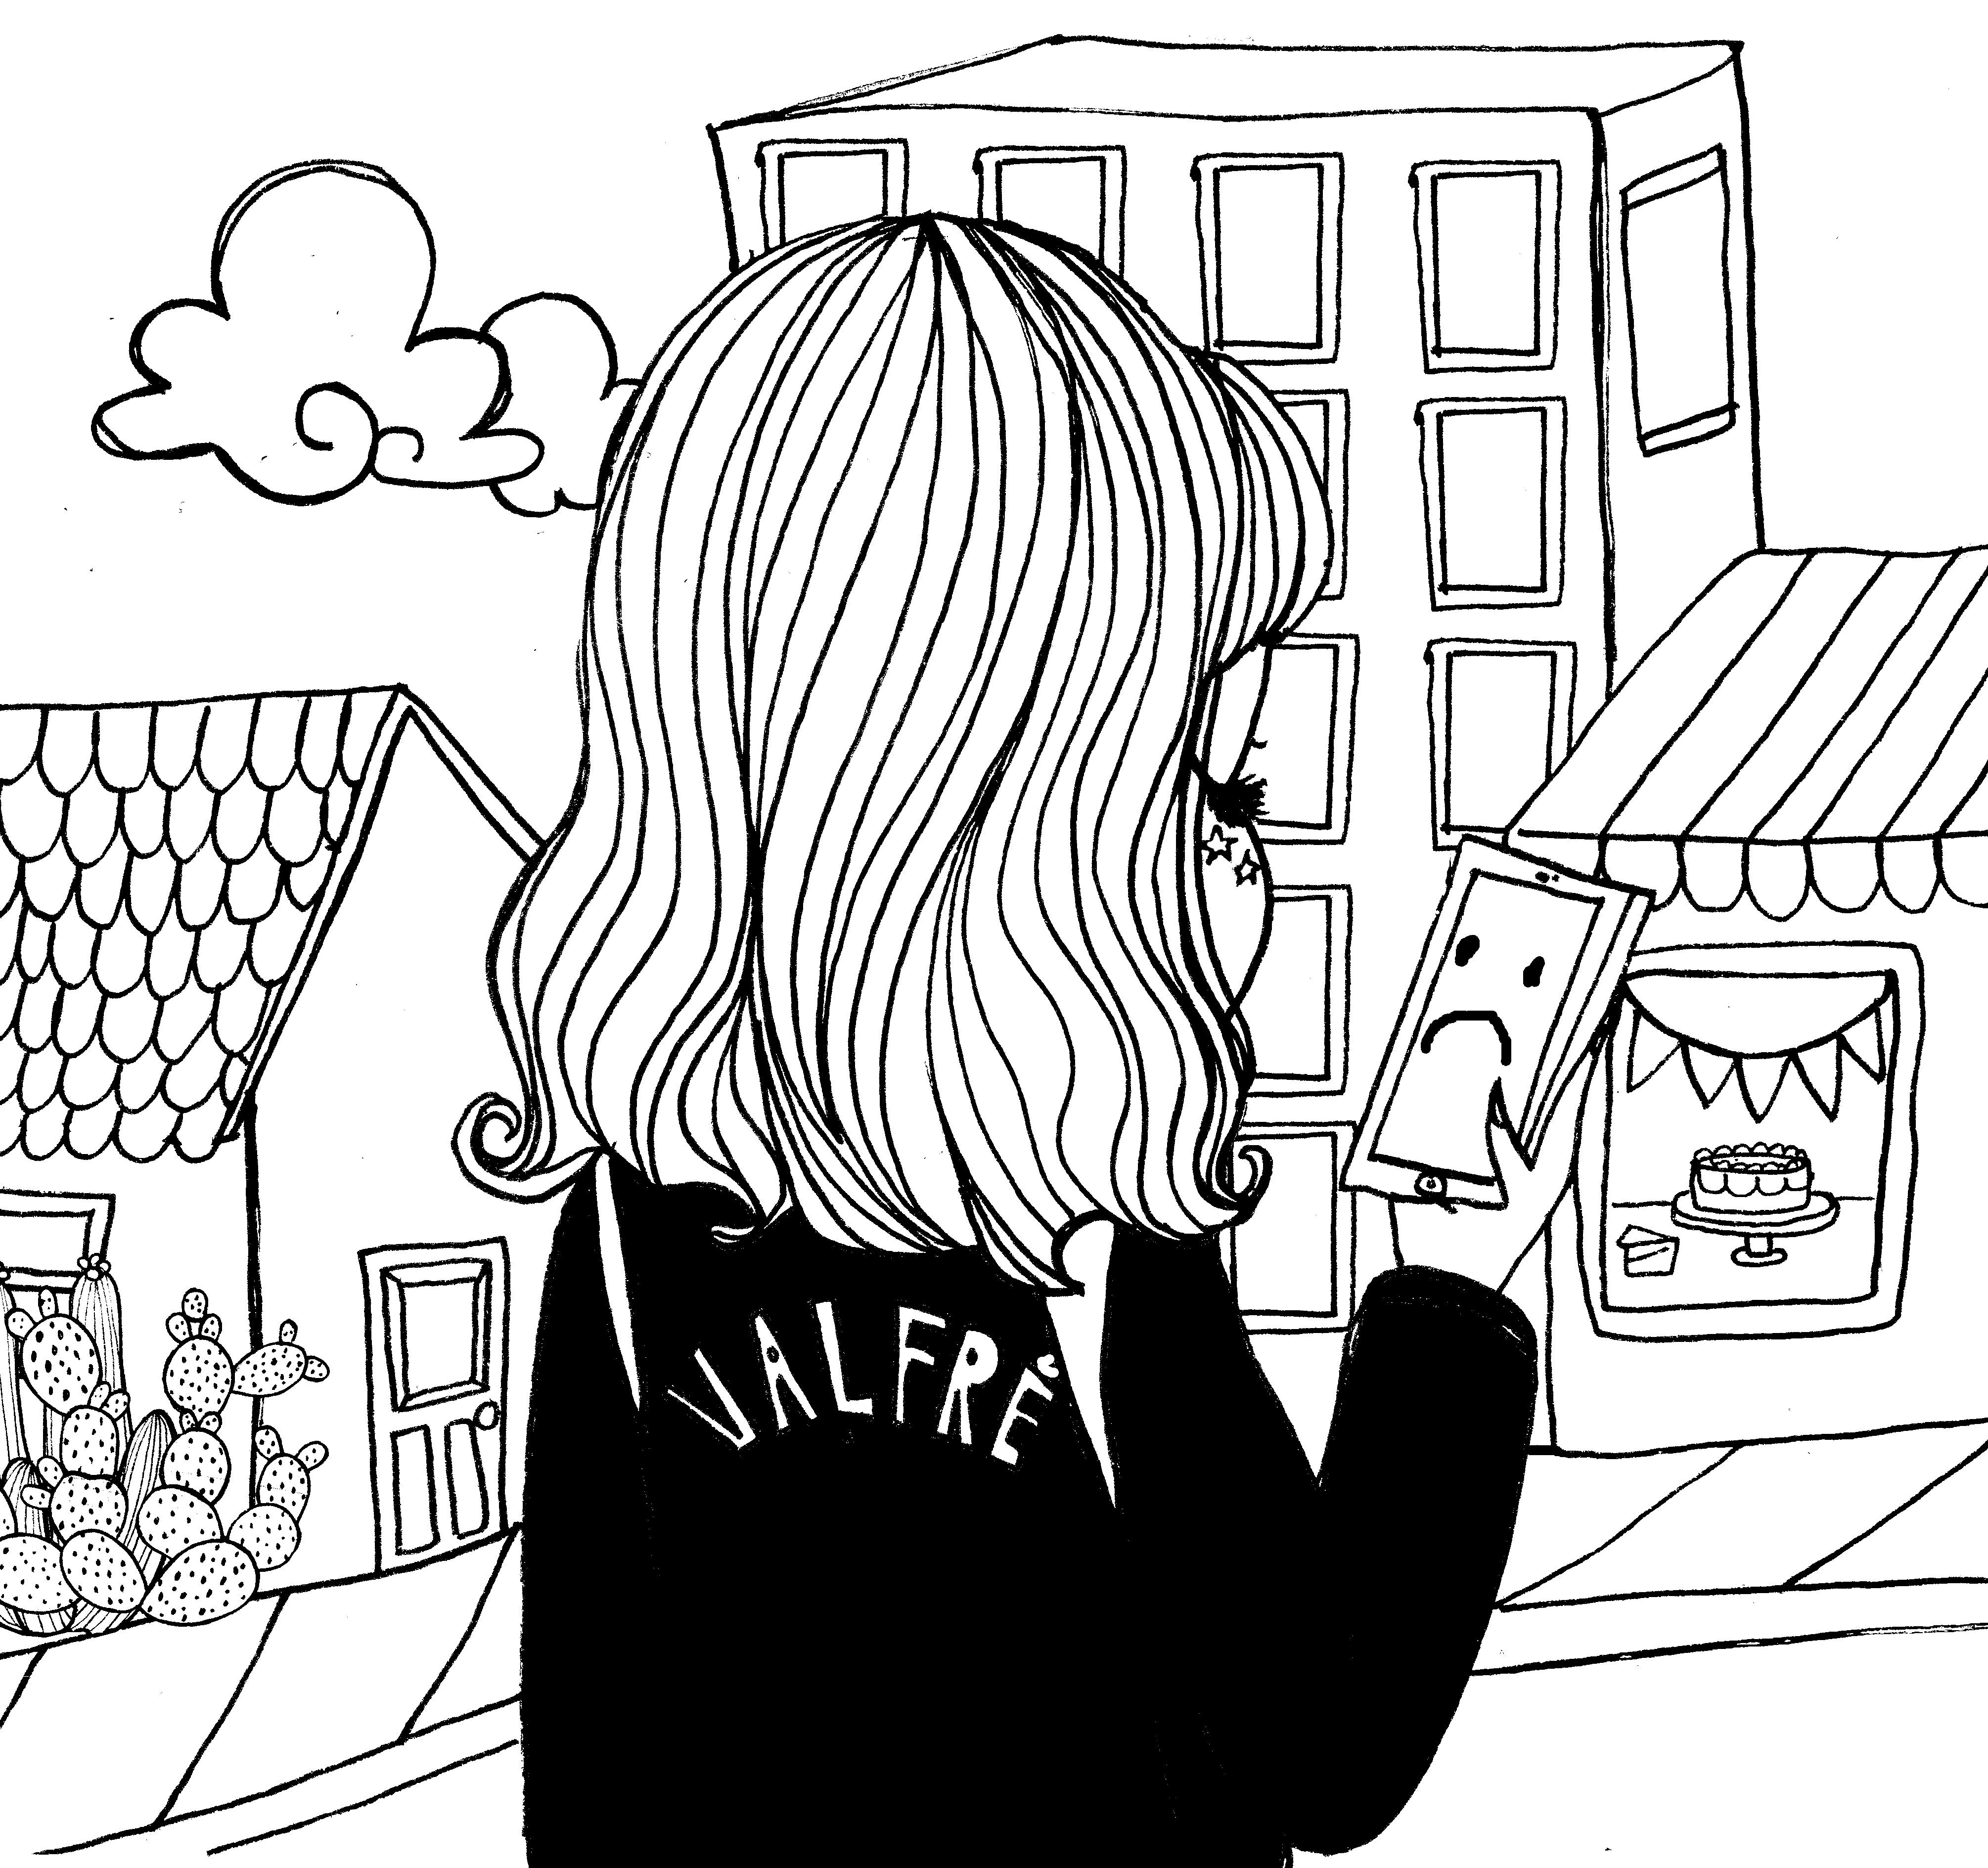 Valfrecolorme coloring pages valfré